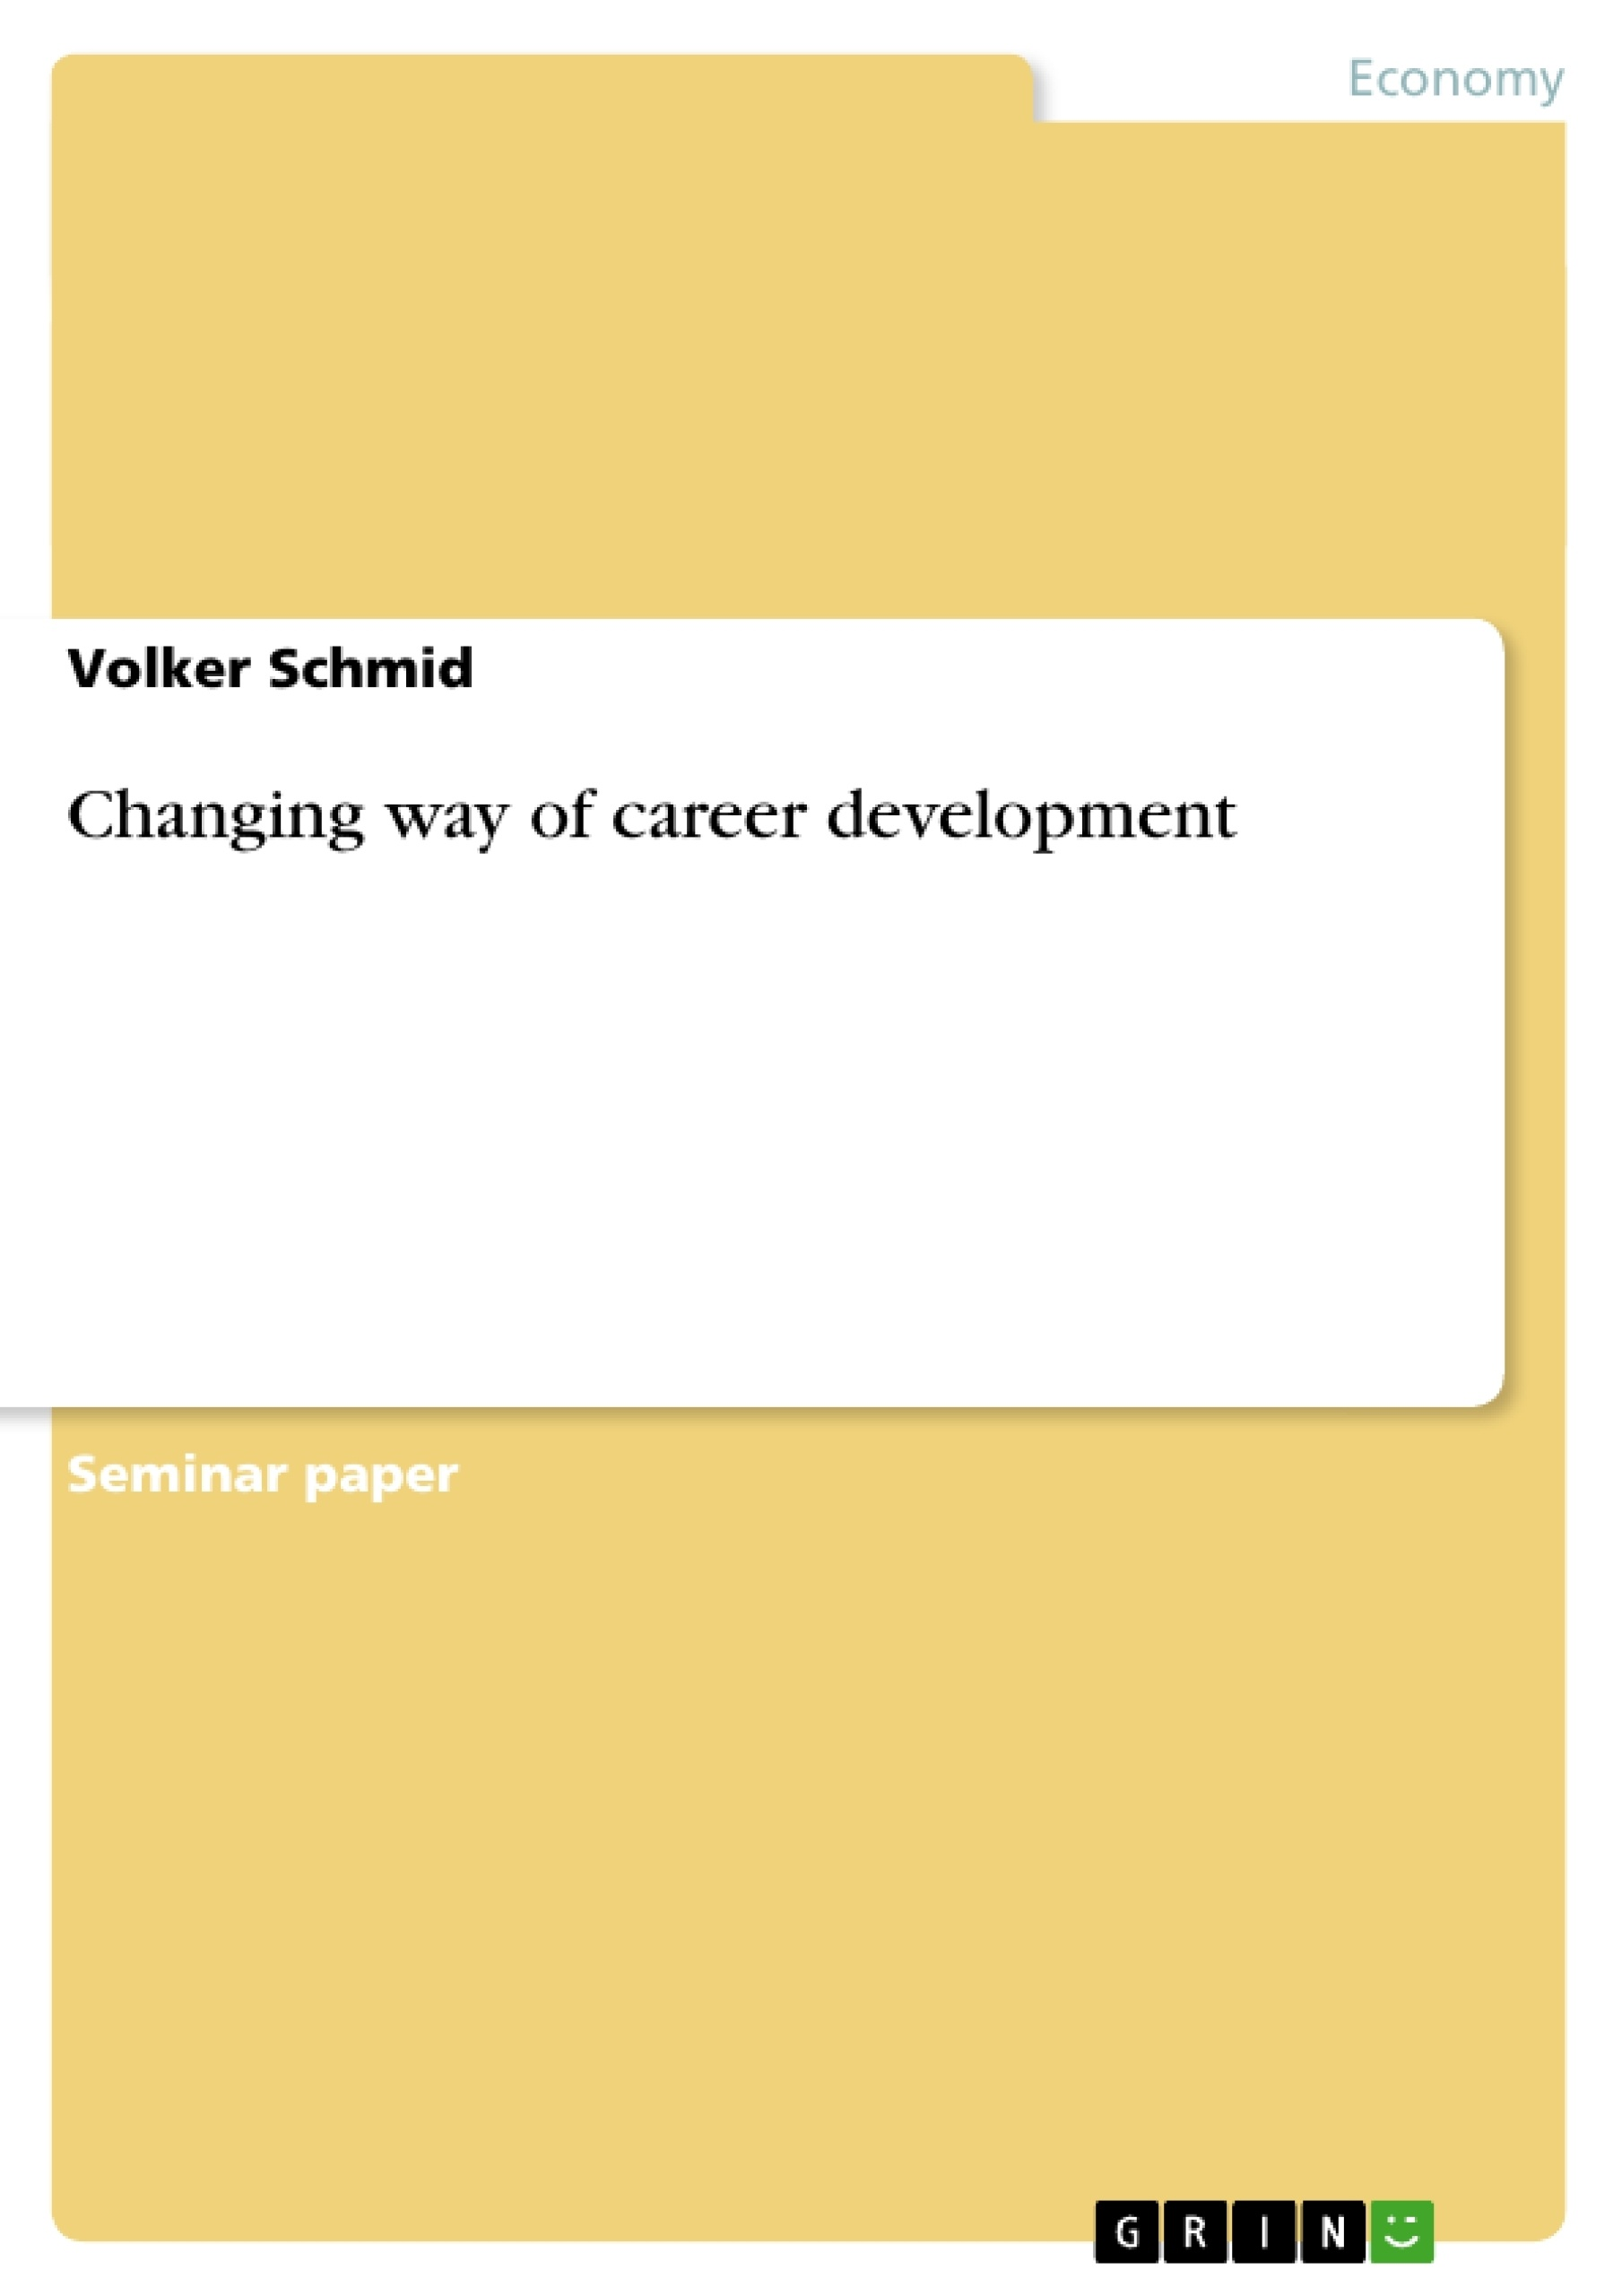 Title: Changing way of career development